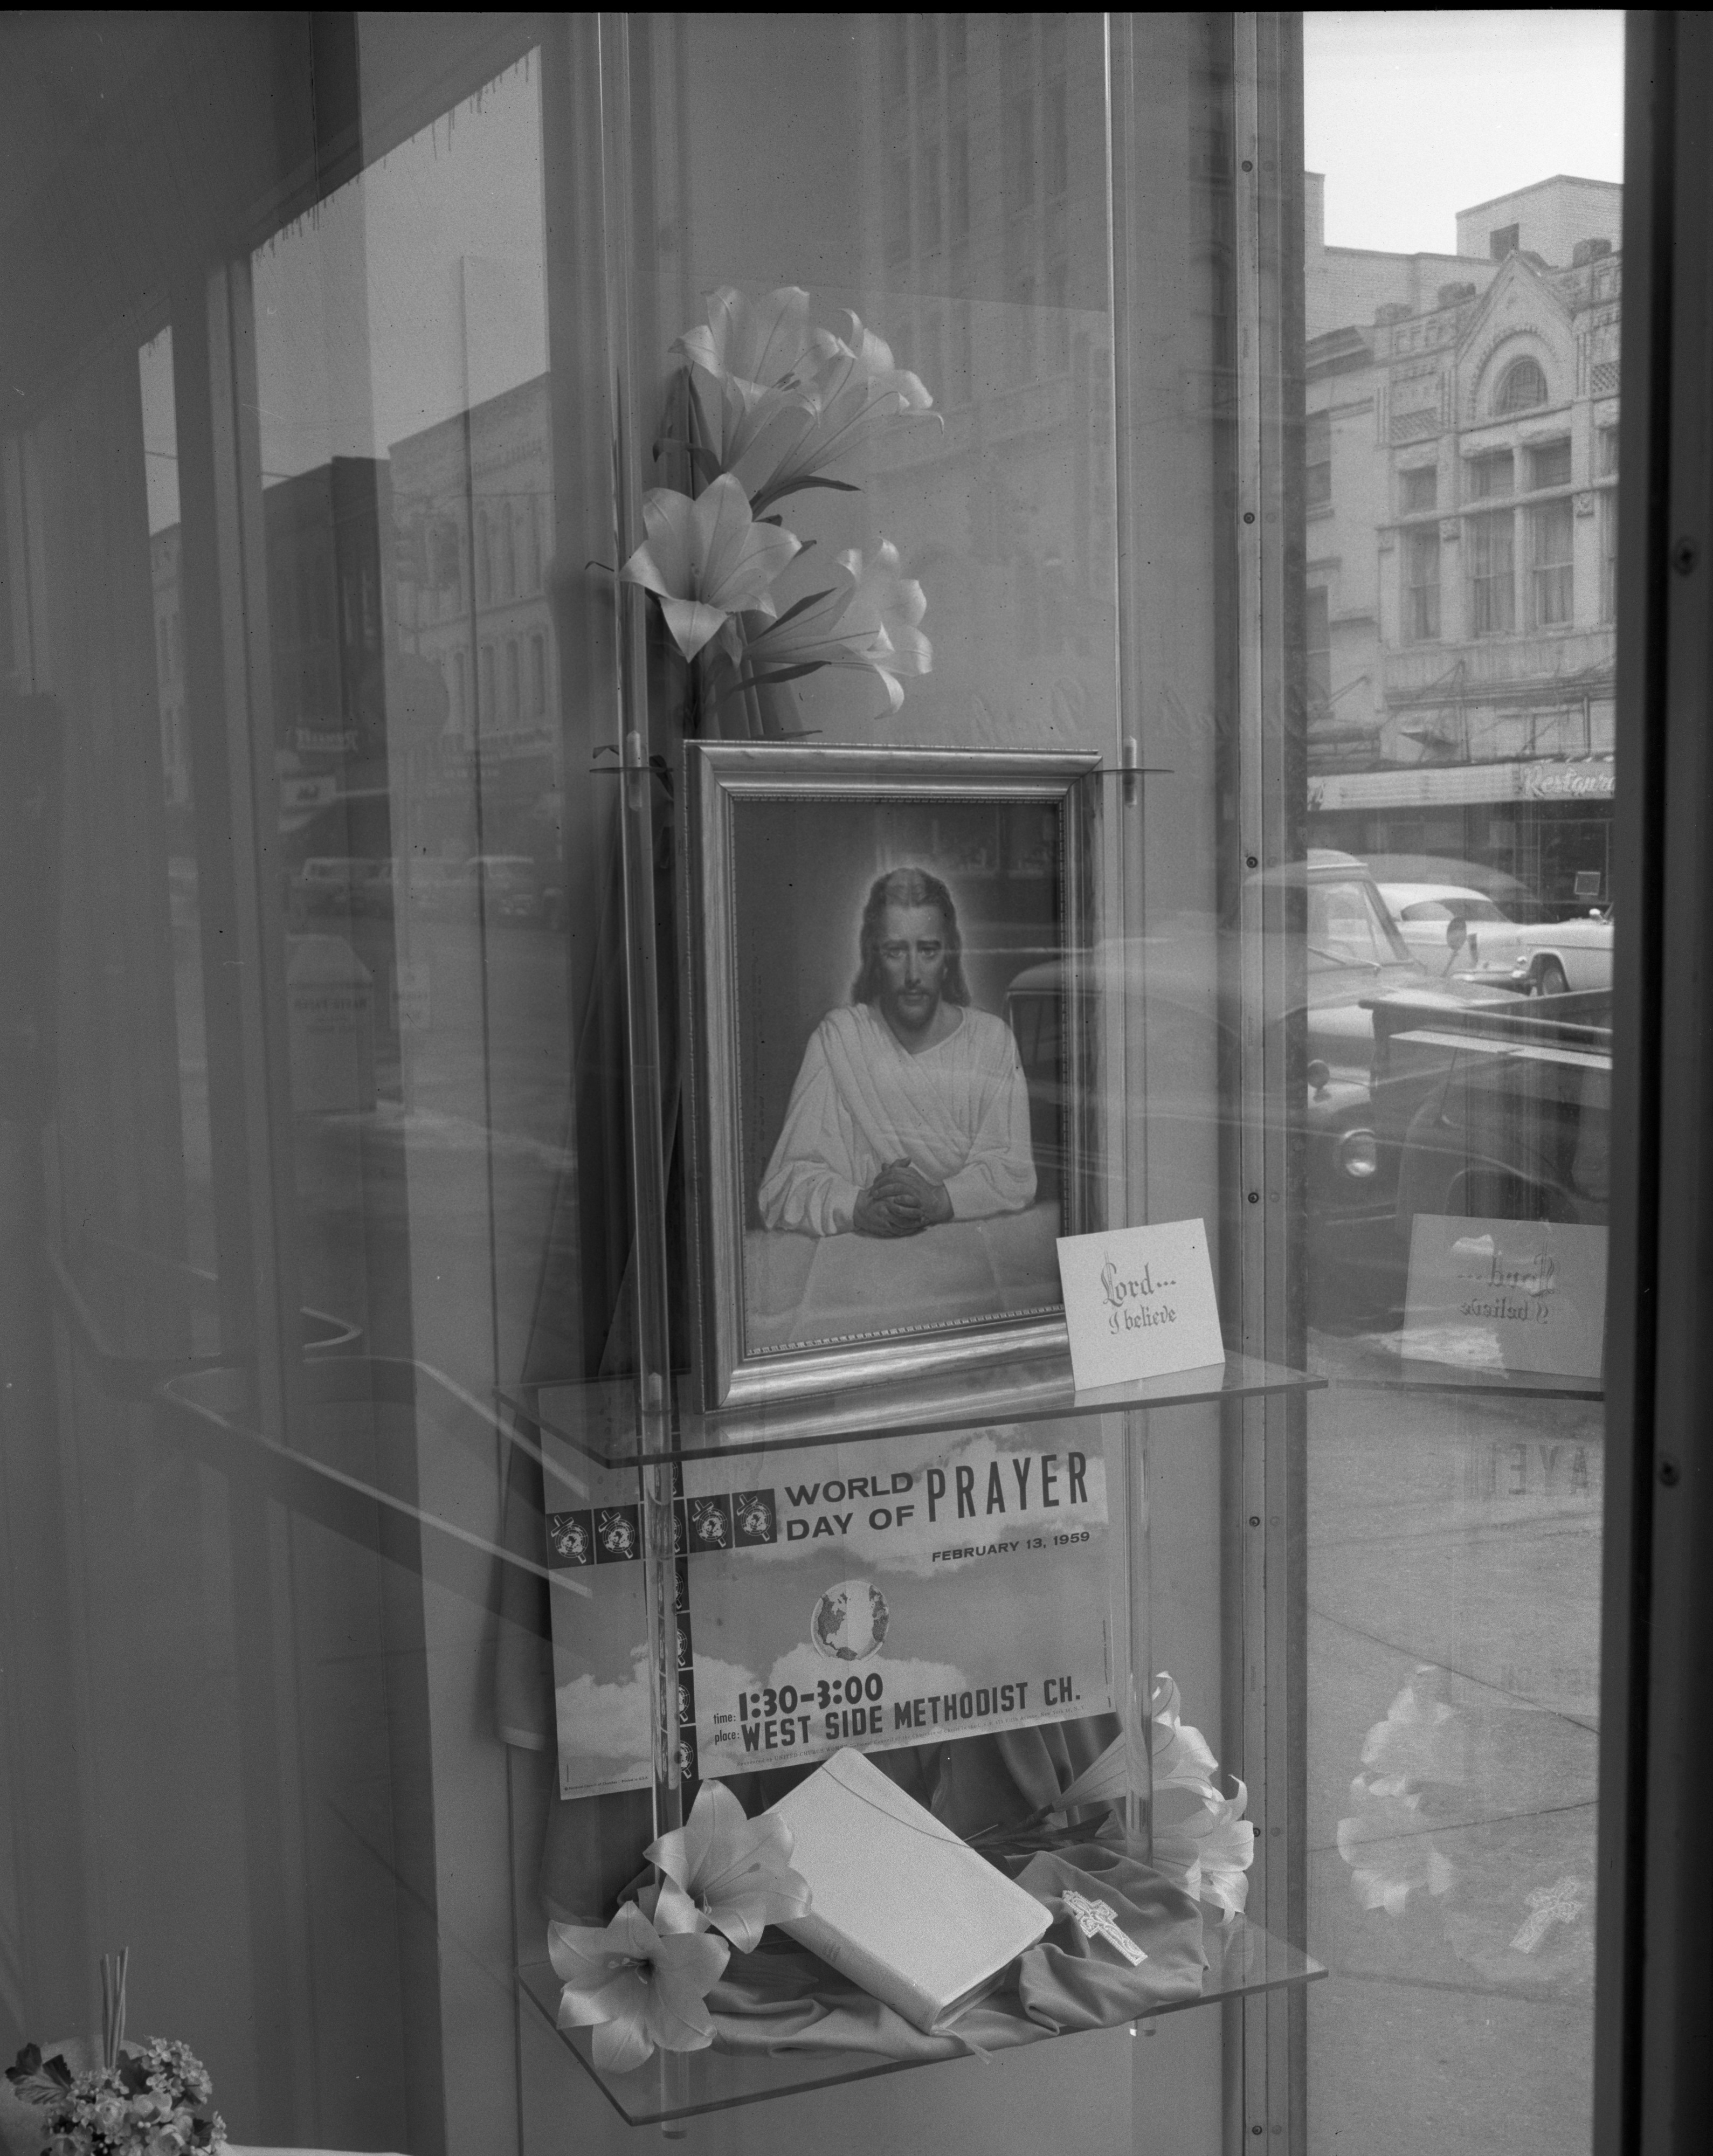 West Side Methodist Church World Day of Prayer Display in Goodyears Window, February 1959 image